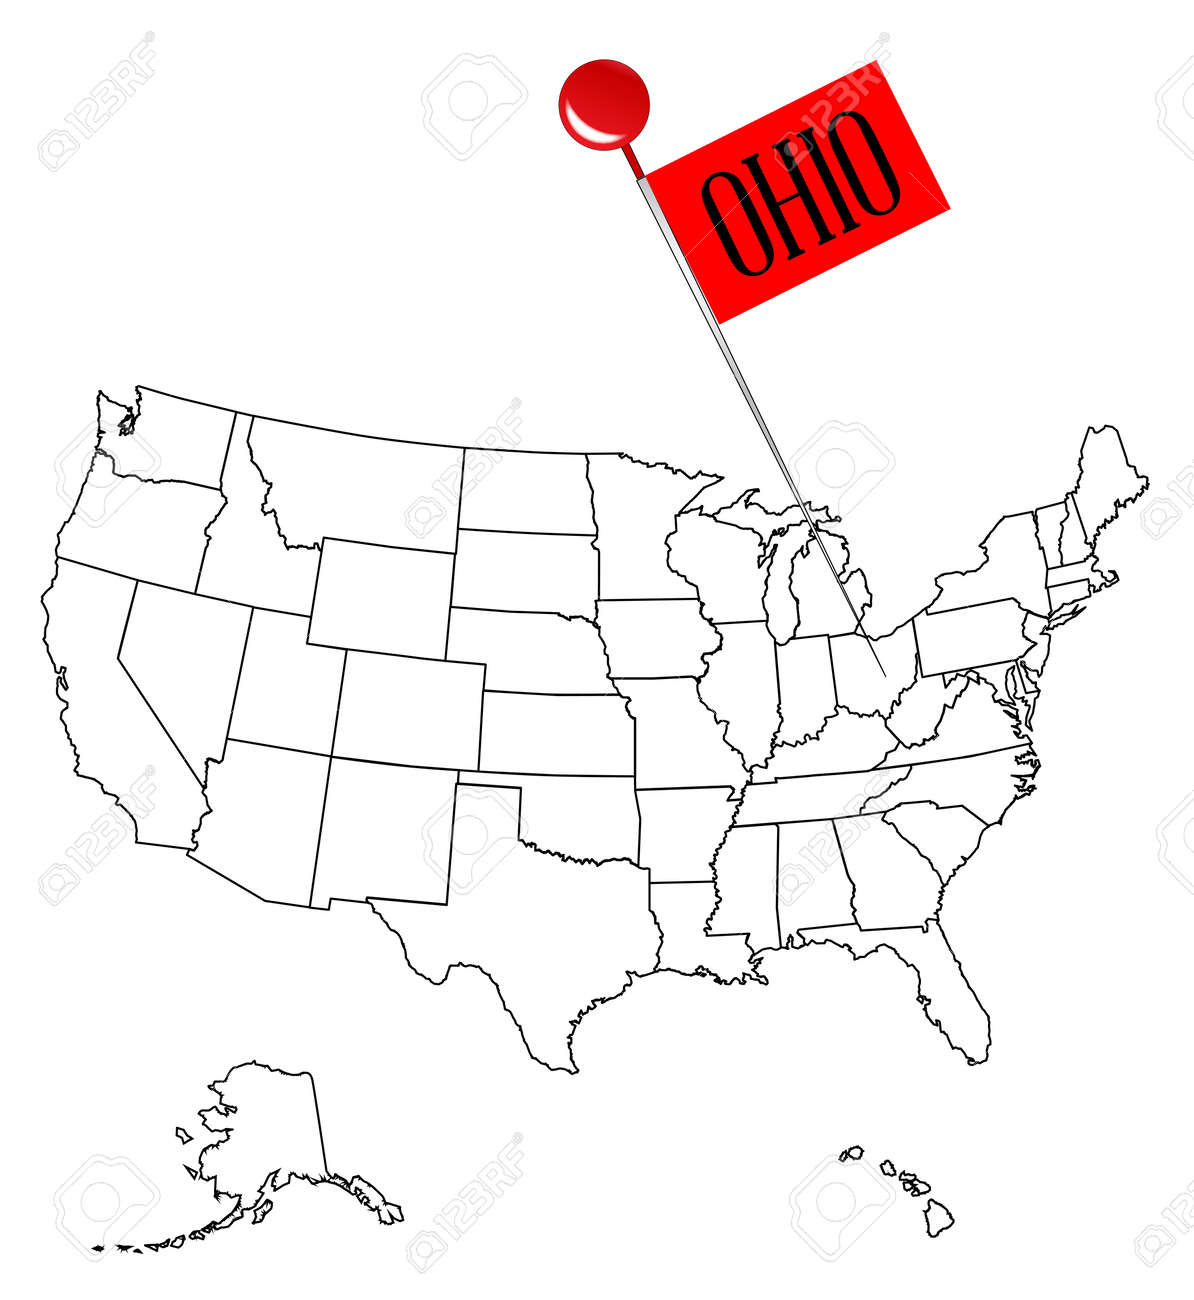 Outline Map Of Ohio.An Outline Map Of Usa With A Knob Pin In The State Of Ohio Royalty